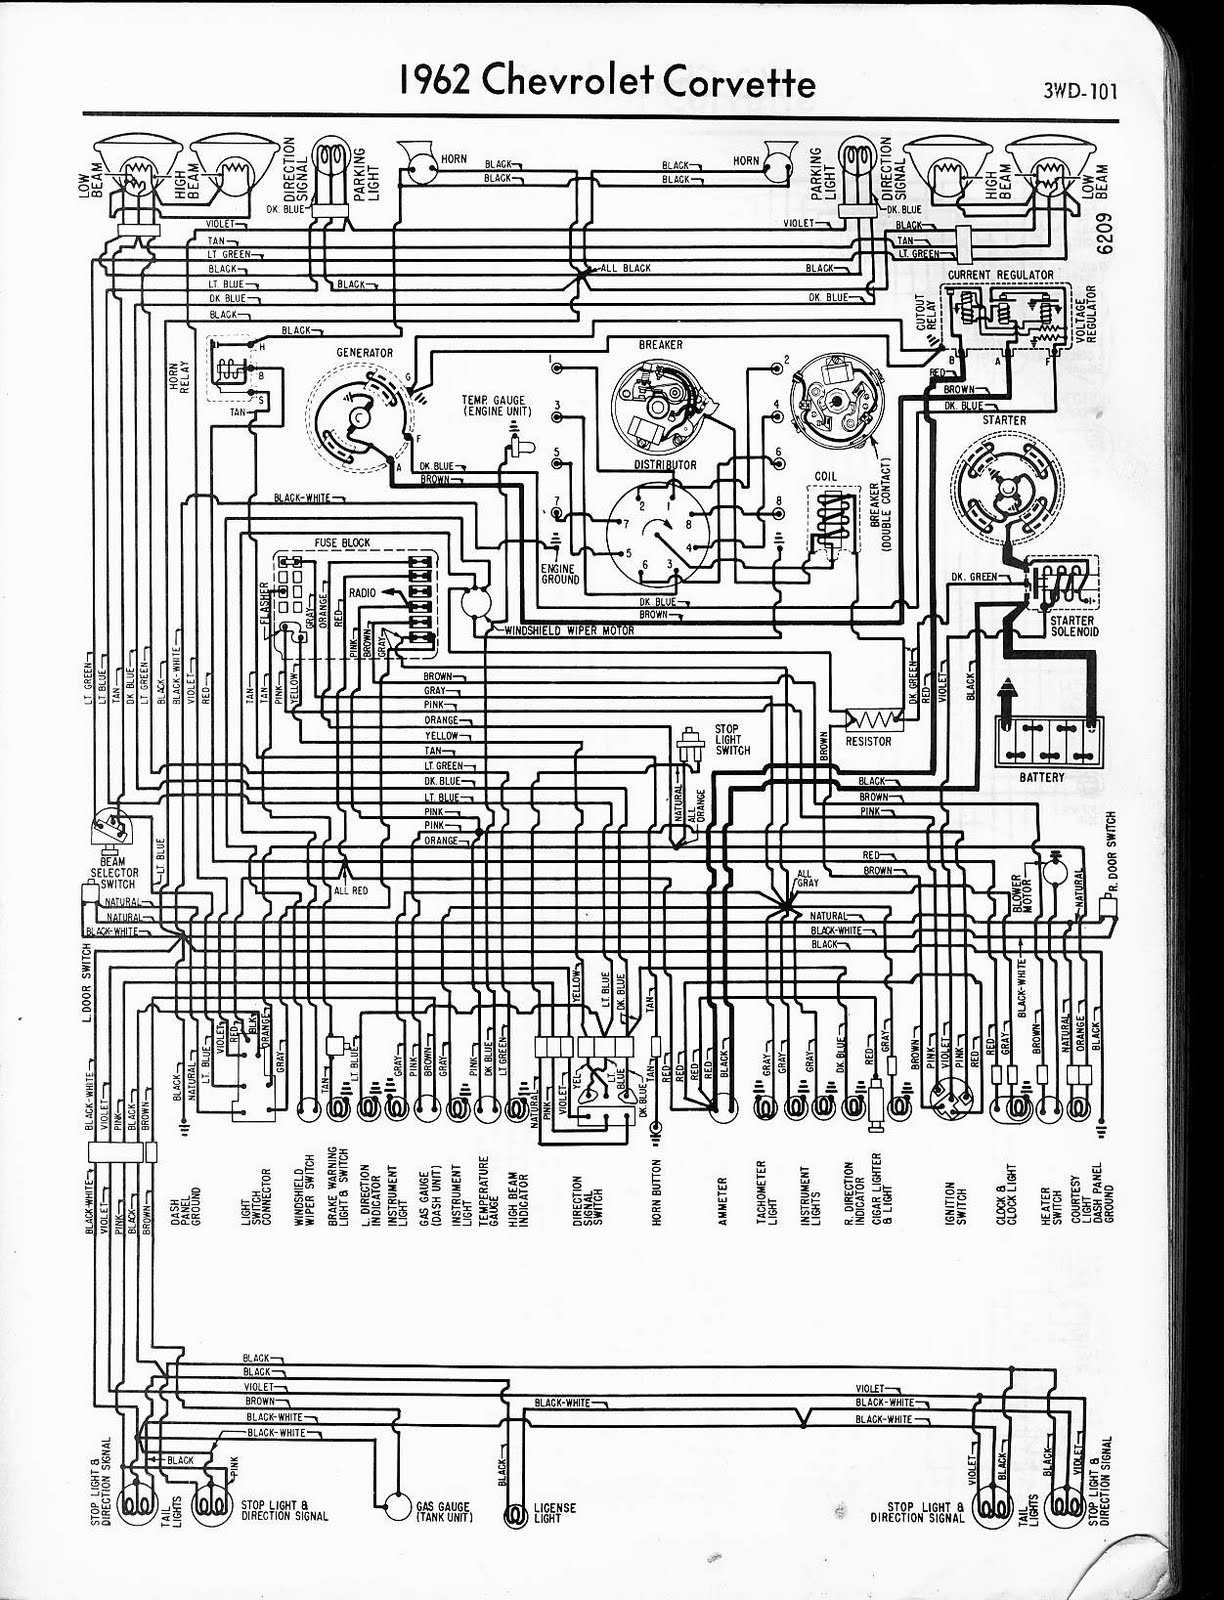 89 C4 Corvette Wiring Diagram Free Download Archive Of Automotive 1974 Firebird Wiper 1965 Schematic Auto Electrical Rh Stanford Edu Uk Co Gov Sanjaydutt Me